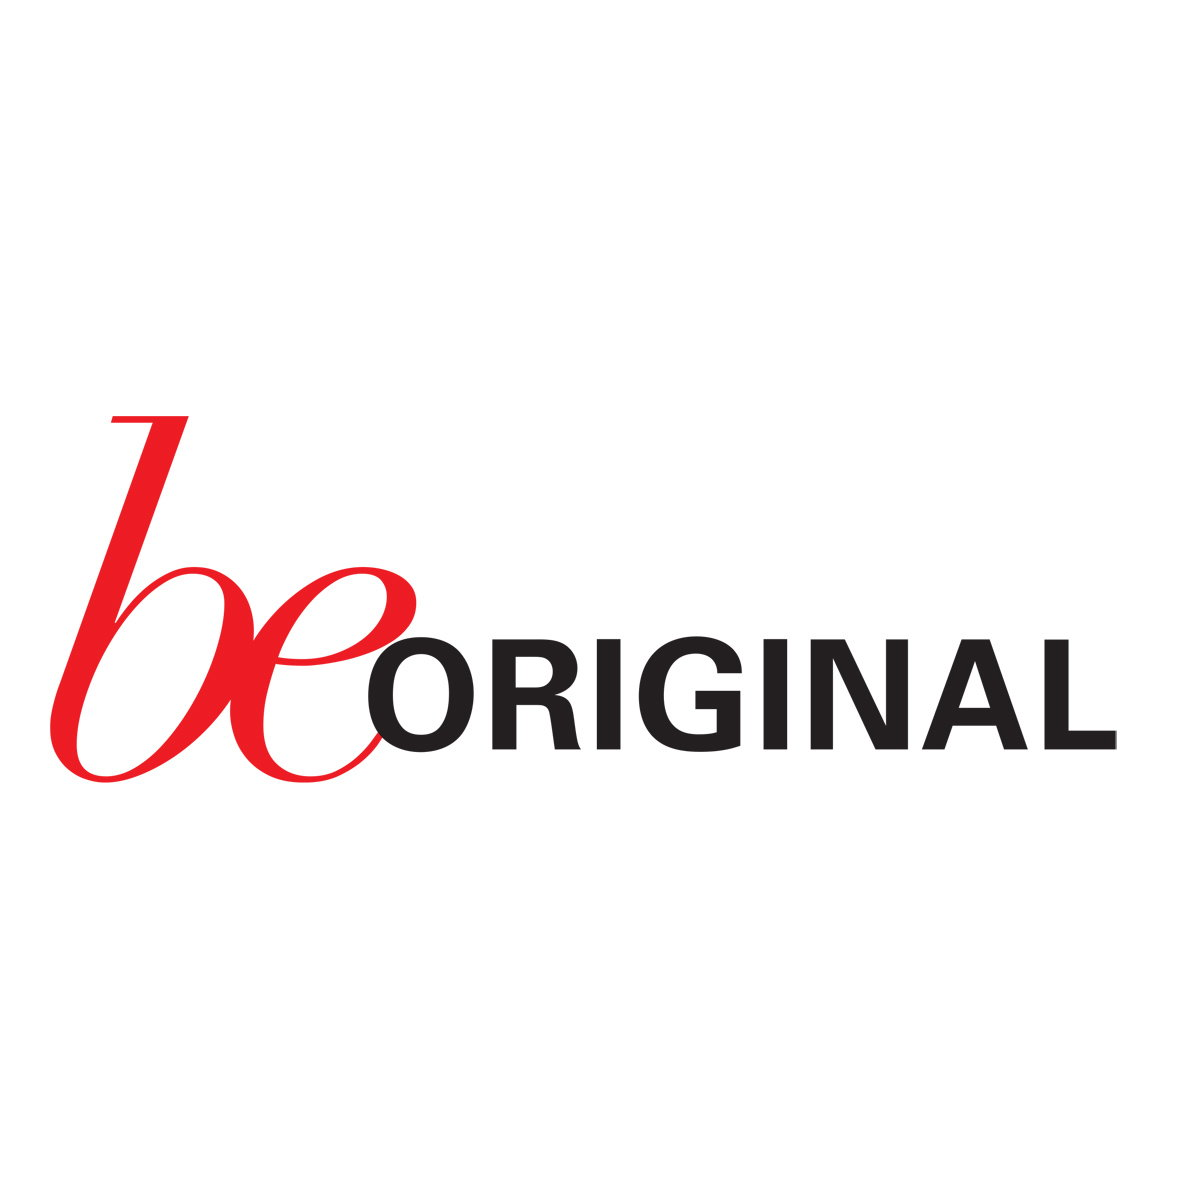 Be Original Americas Announces Second Annual Summer Design Fellowship